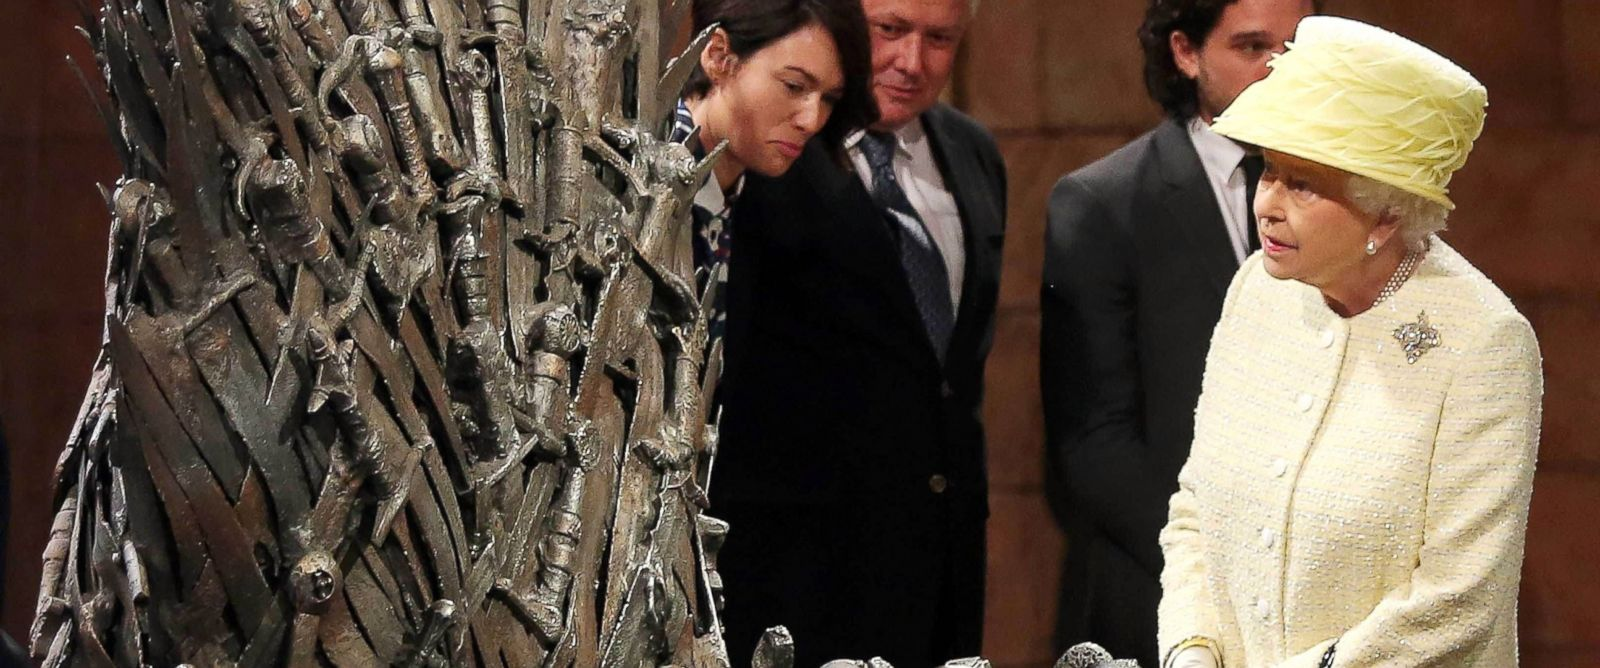 PHOTO: Queen Elizabeth II meets cast members of the HBO TV series Game of Thrones Lena Headey and Conleth Hill as she views some of the props including the Iron Throne on the set of Game of Thrones in Belfasts Titanic Quarter, June 24, 2014.